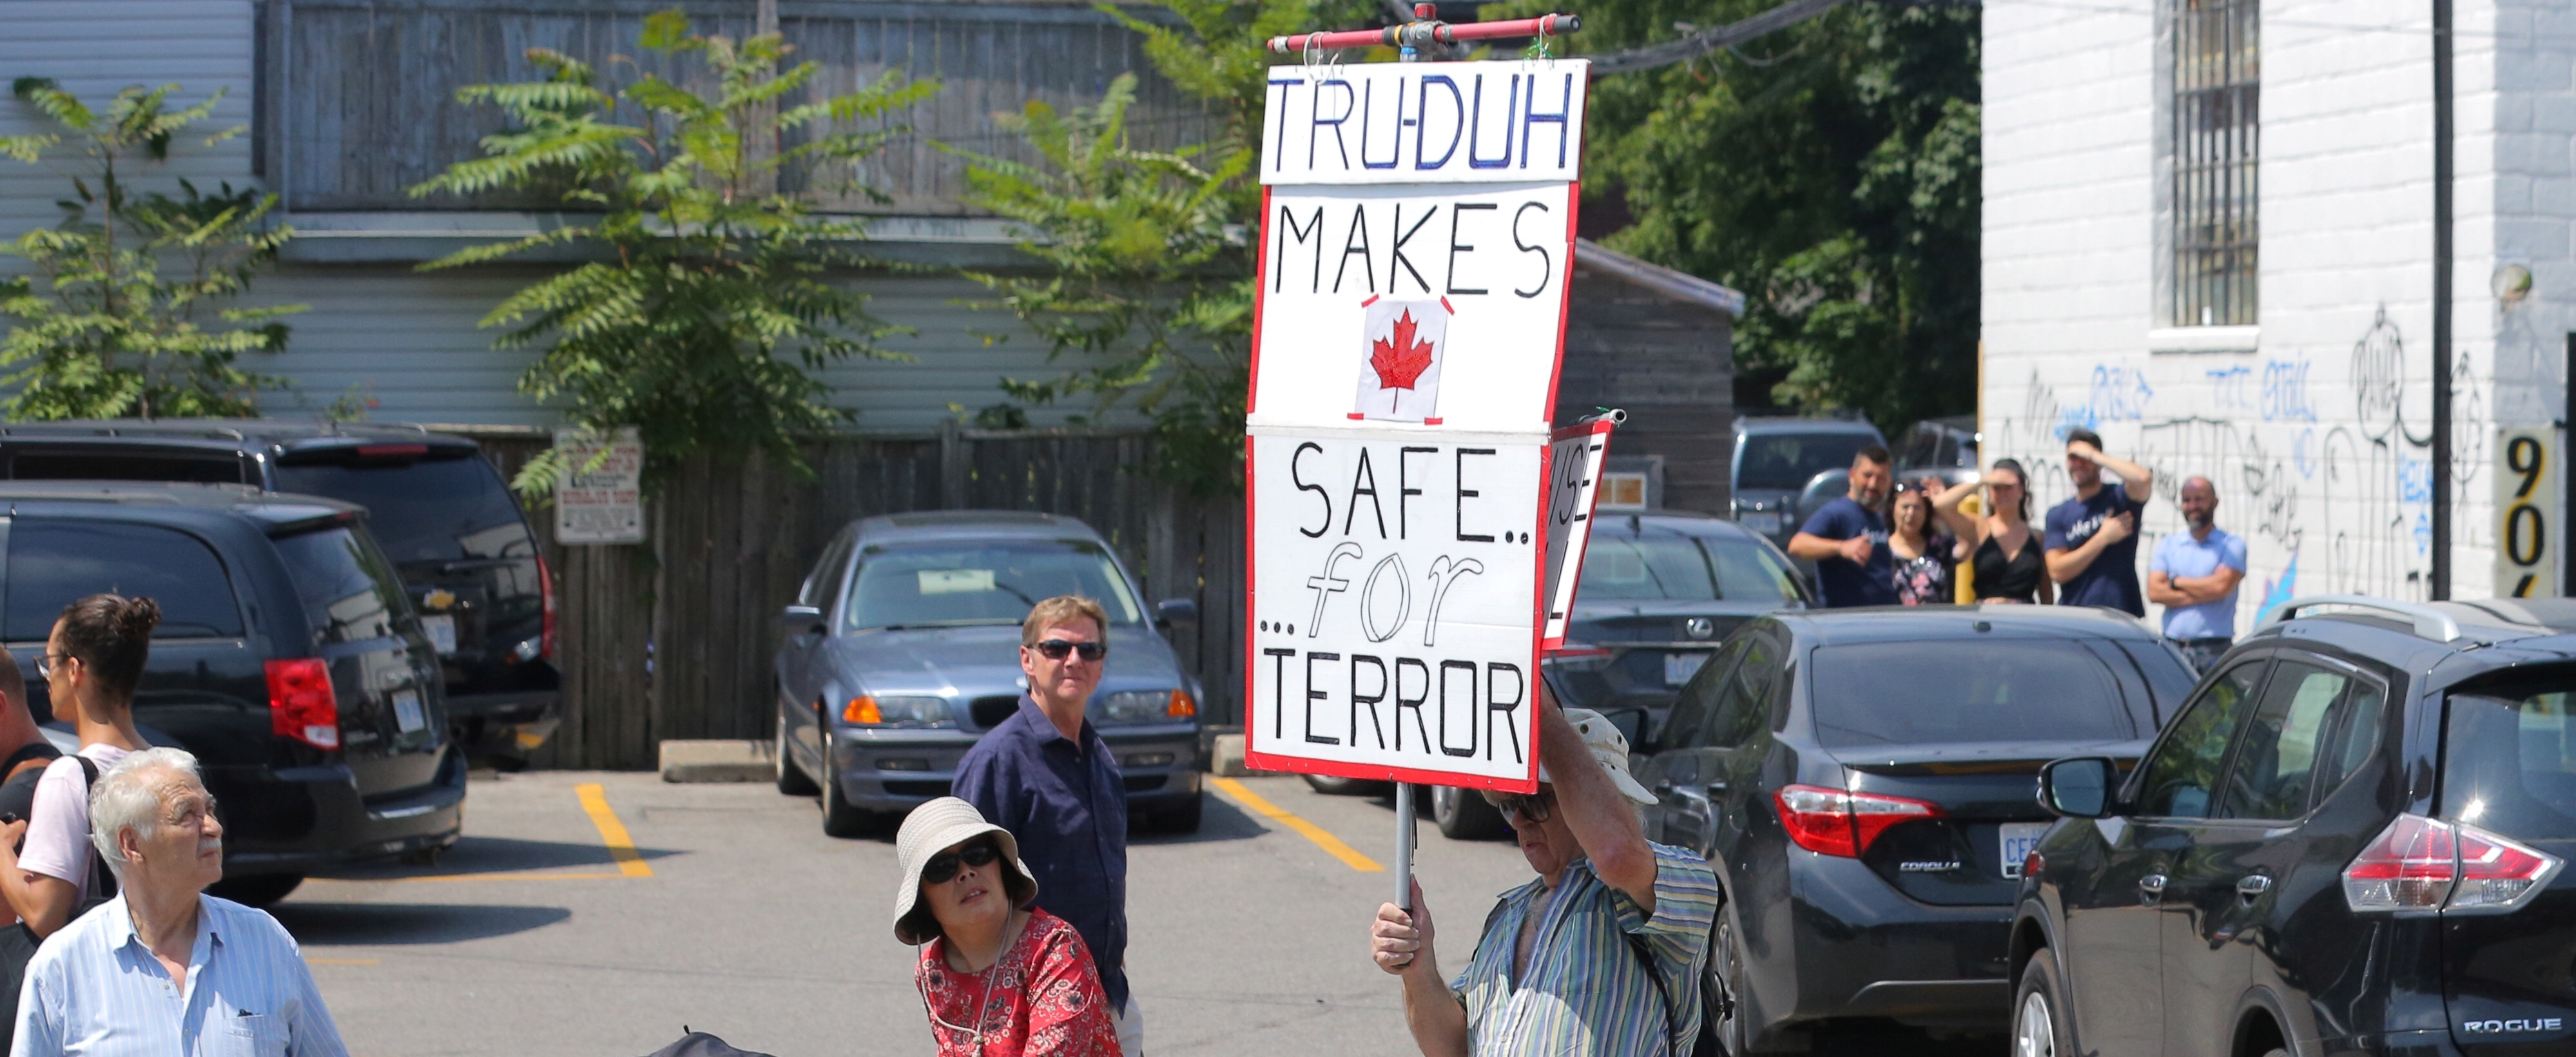 A protester holds a sign during Canada's Prime Minister Justin Trudeau's visit to the site of the mass shooting at Alexander the Great Parkette on Danforth Avenue in Toronto, Ontario, Canada, July 30, 2018. REUTERS/Chris Helgren - RC1756EE9FB0